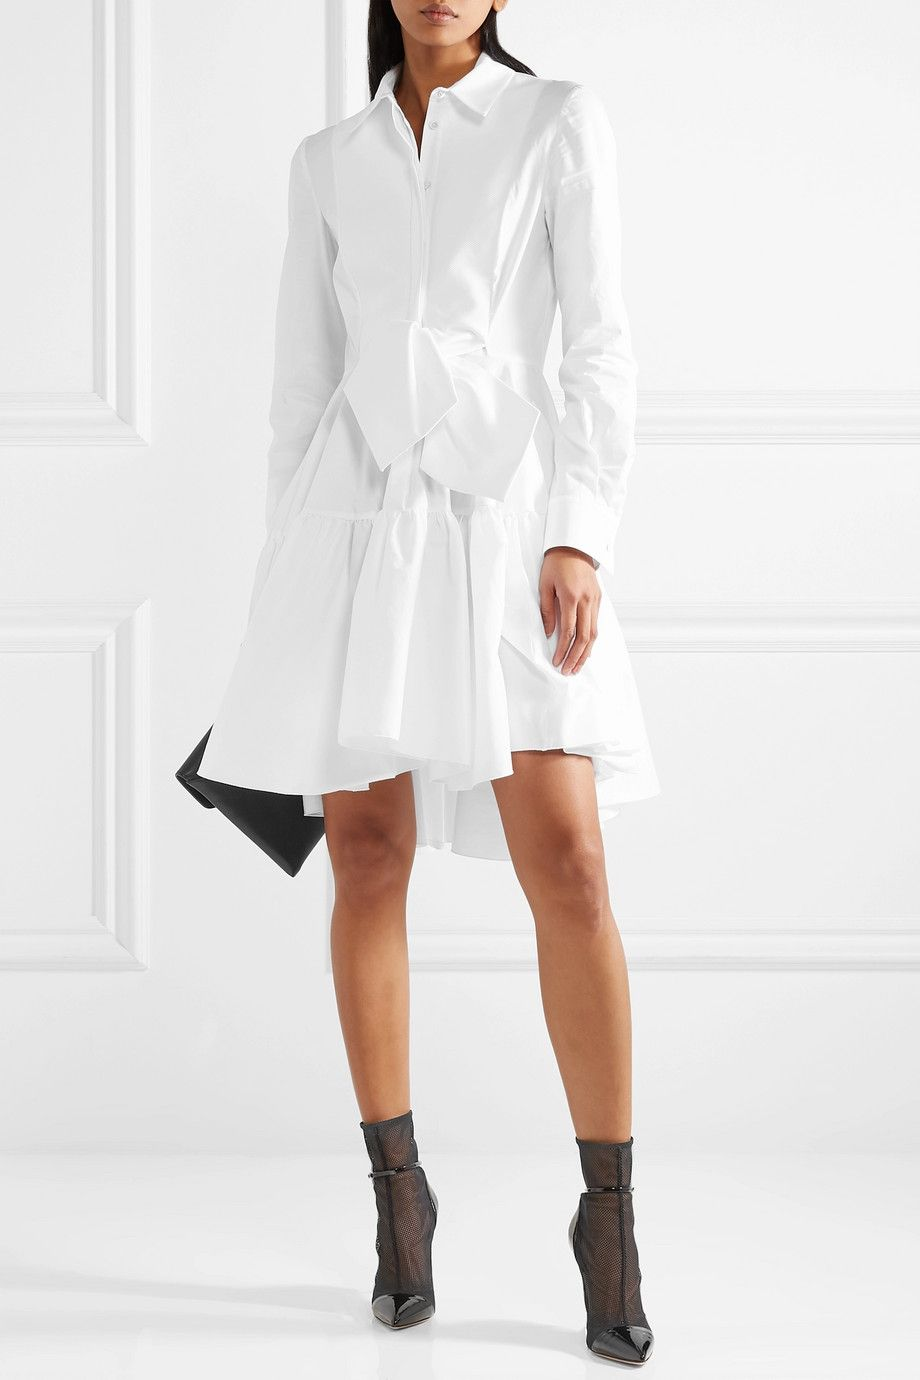 Antonio Berardi Piqué Paneled Cotton Blend Poplin Shirt Dress Net A Porter Com